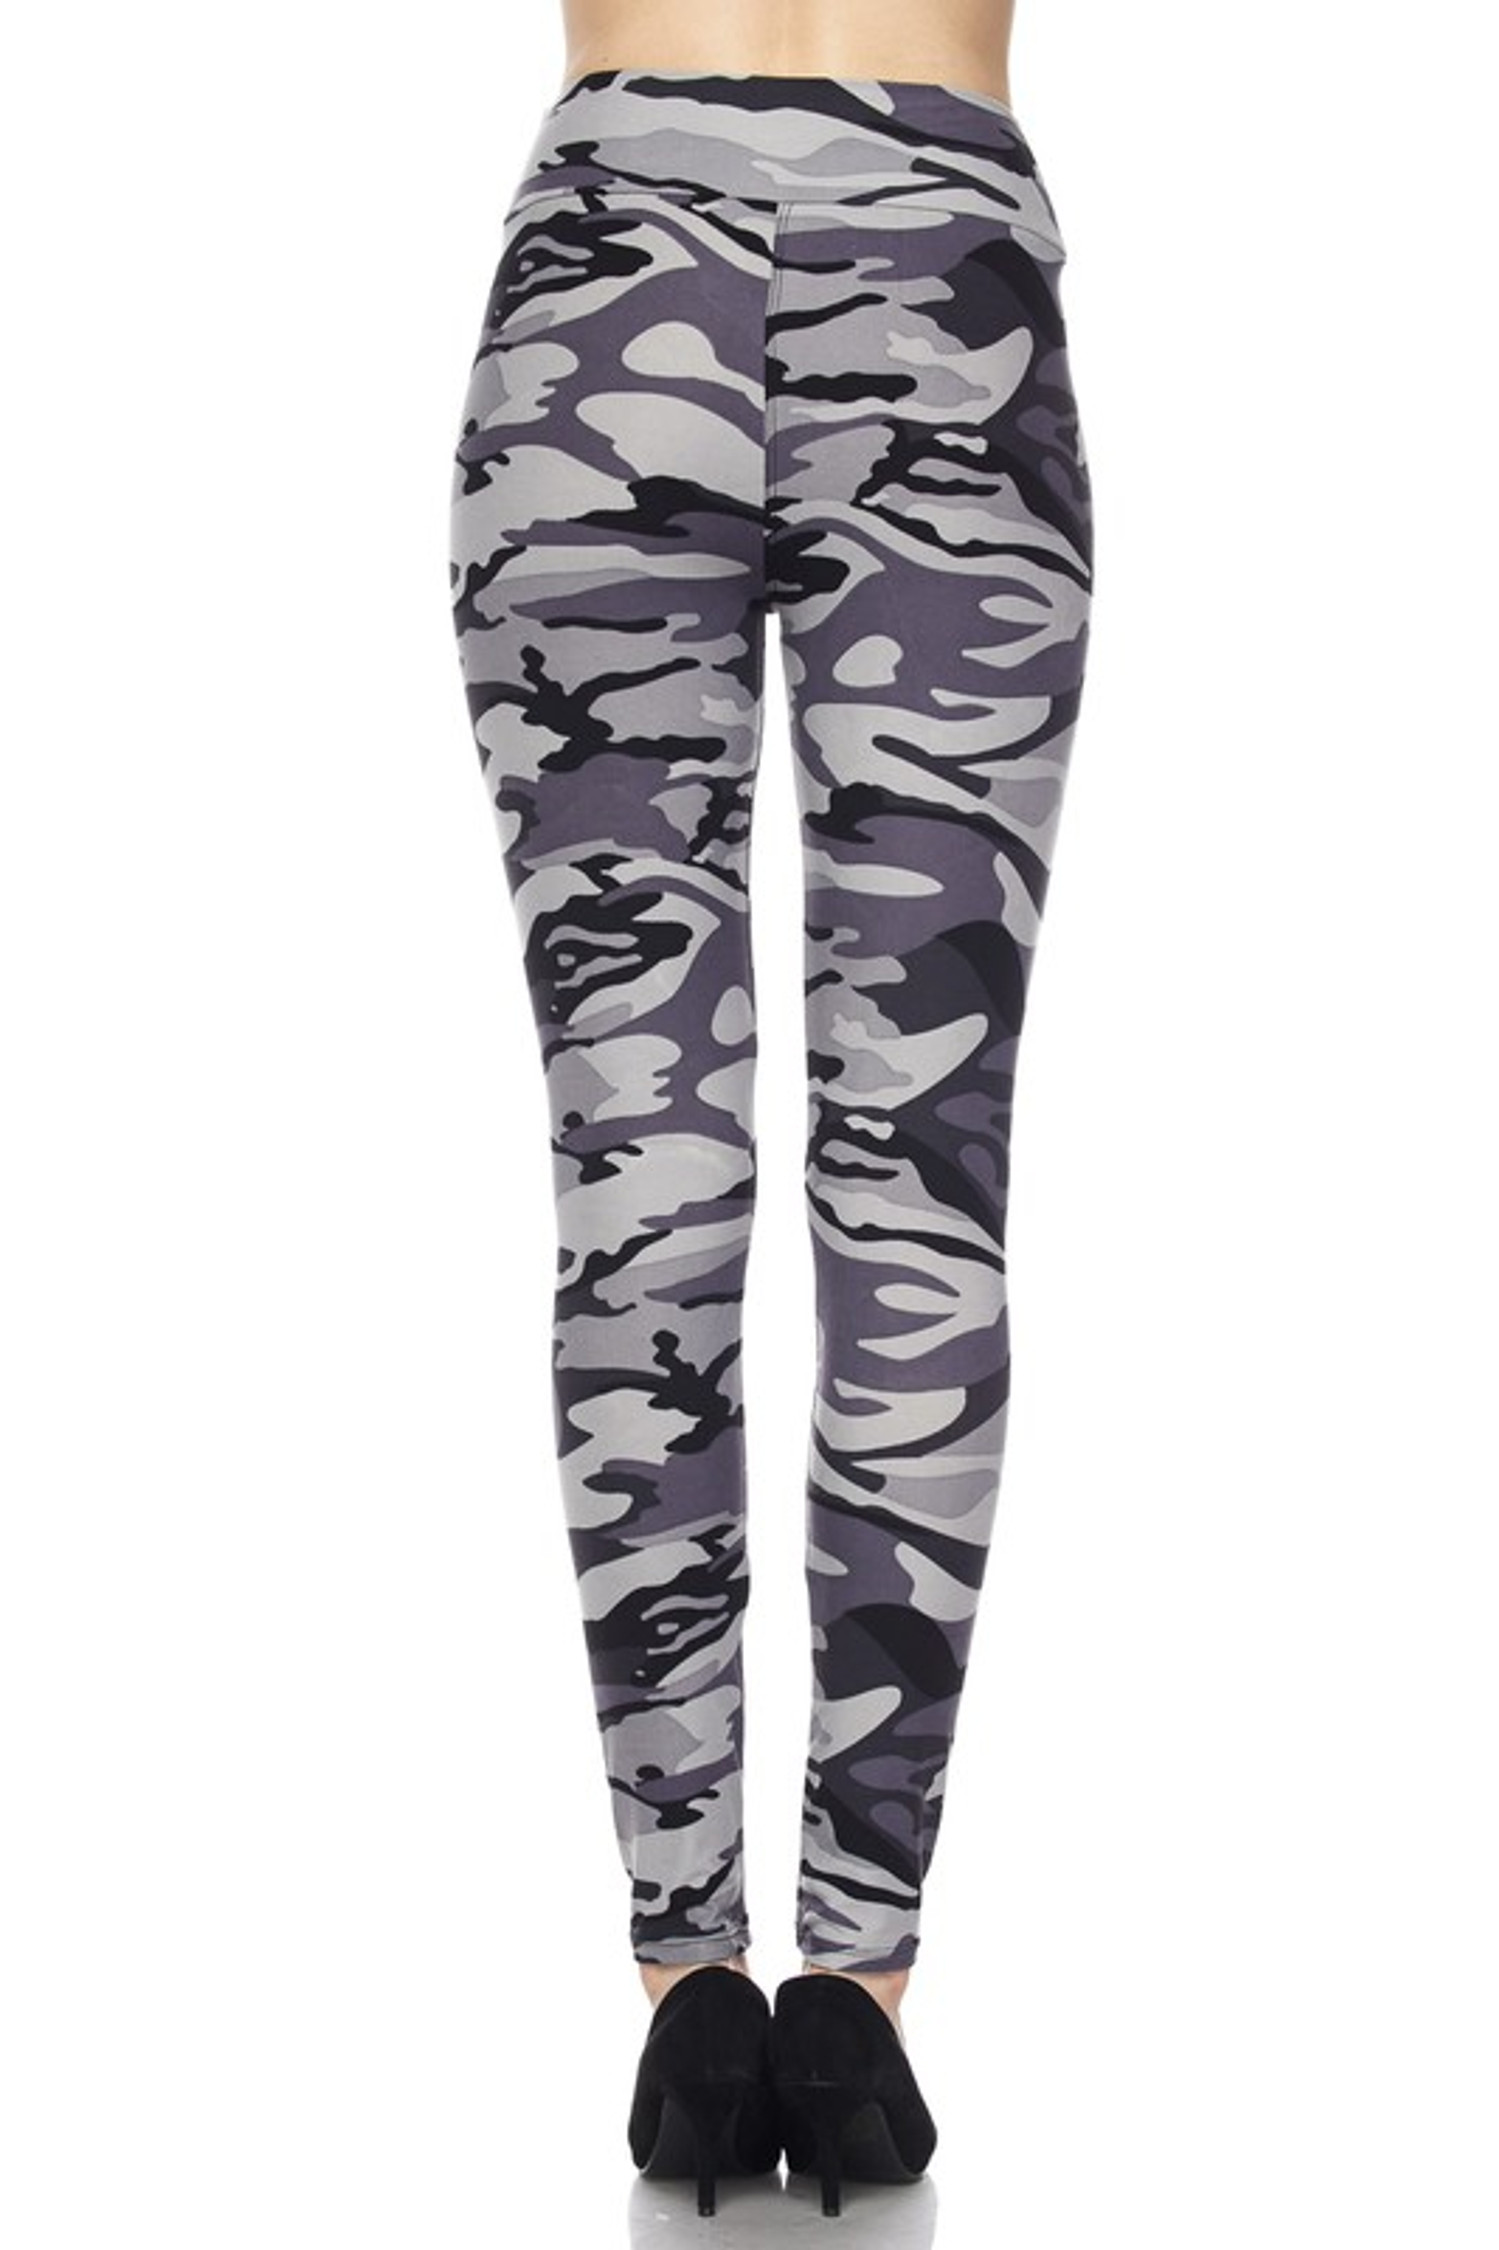 Brushed  Charcoal Camouflage High Waist Plus Size Leggings